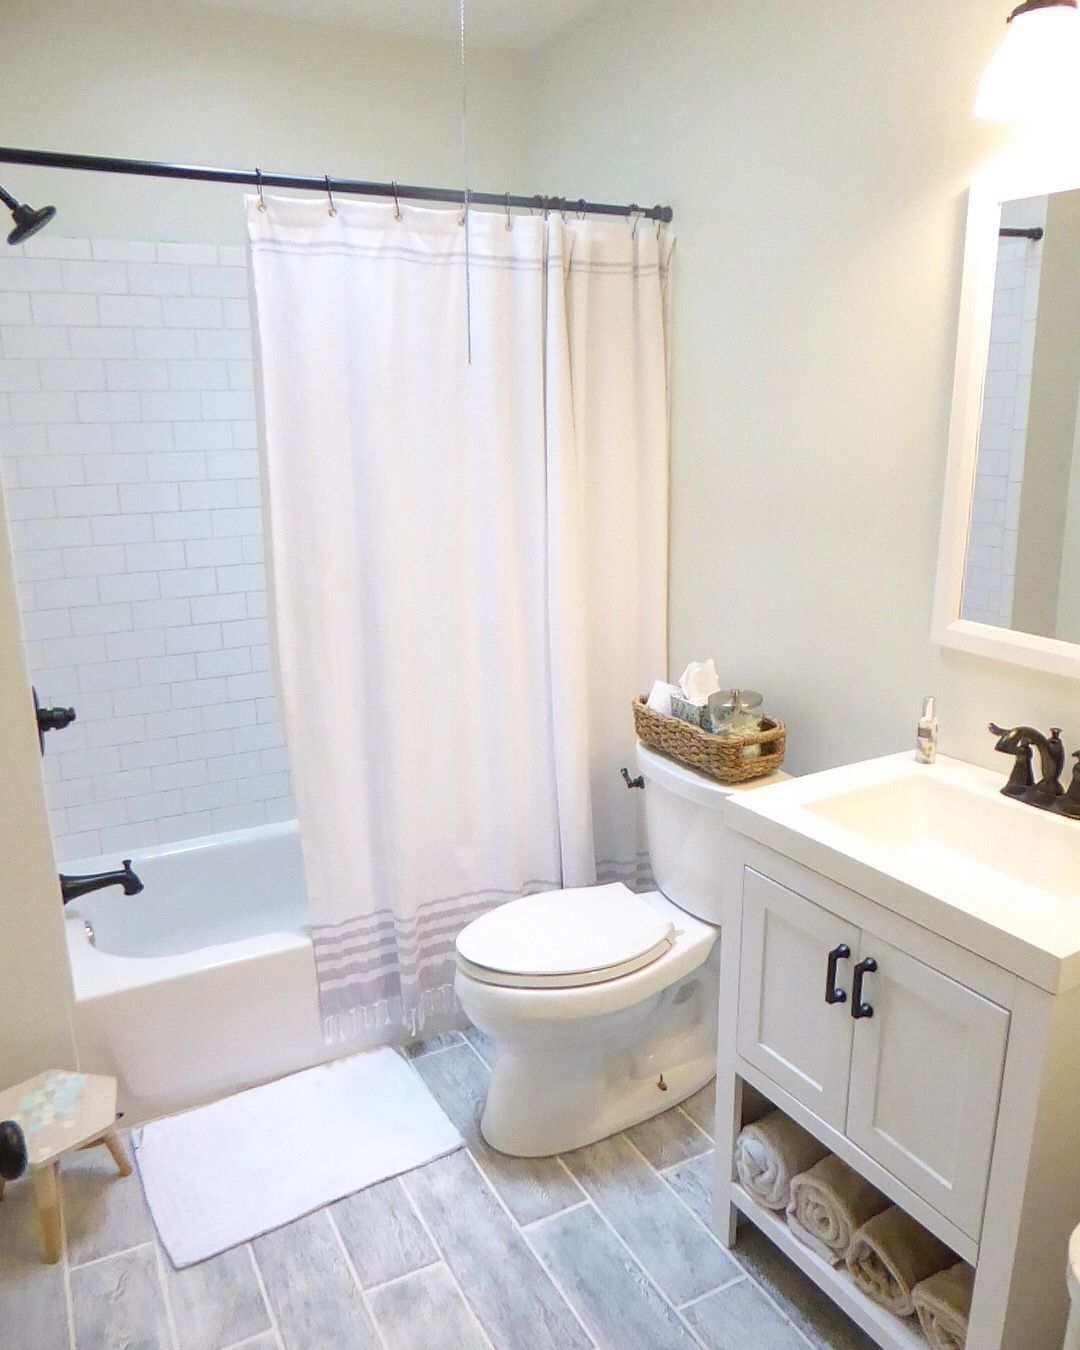 Small Bathroom Remodel Clean And Bright Grey Floors White Subway